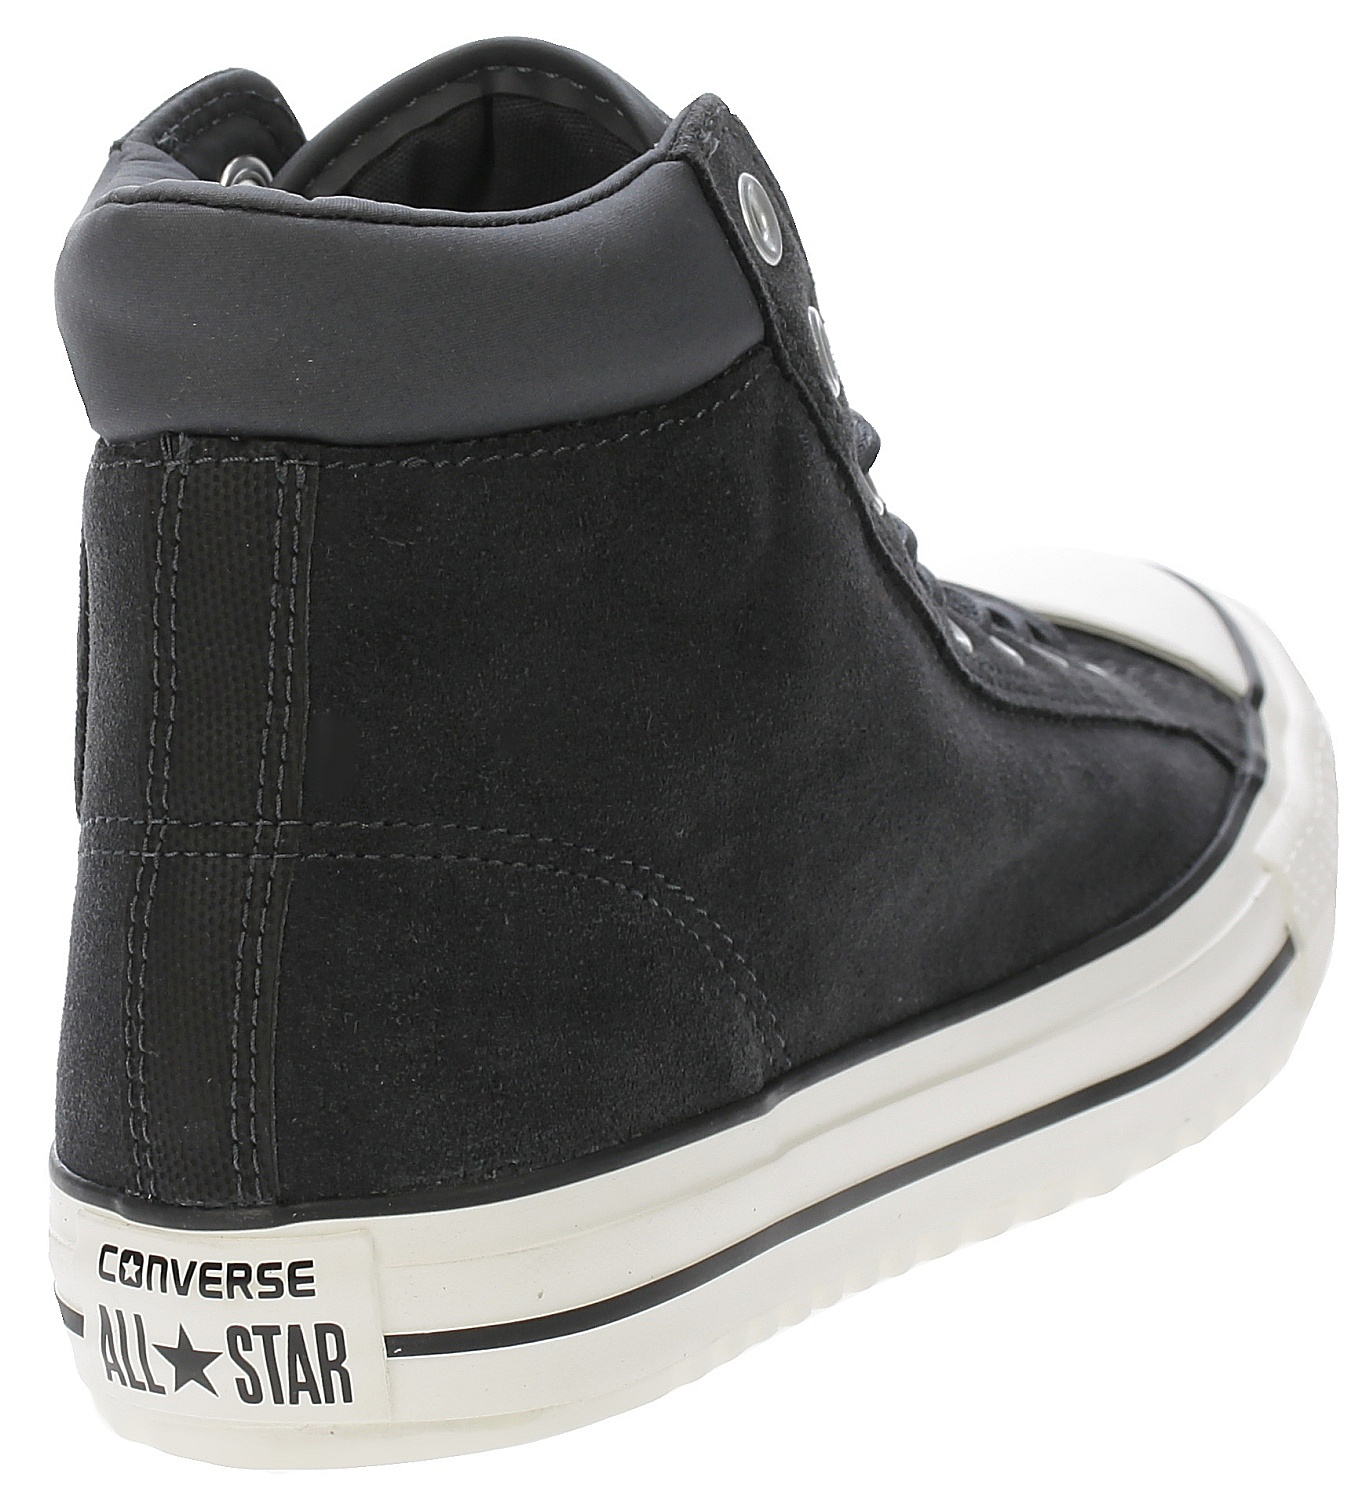 54029eb026d4e6 ... boty Converse Chuck Taylor All Star Converse Boot PC Hi - 153675 Almost  Black  ...